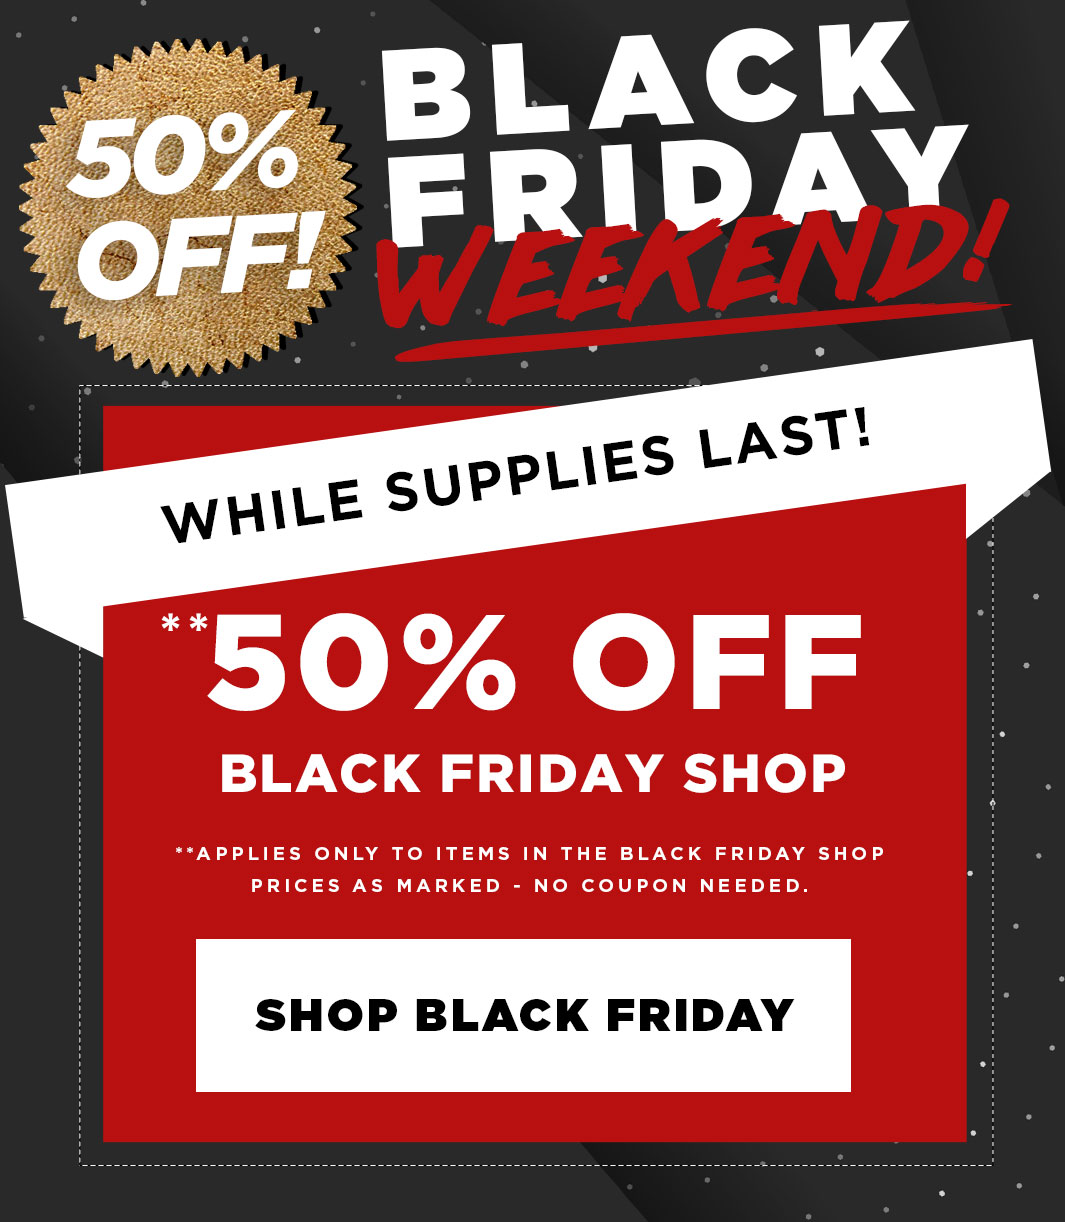 Black Friday All Weekend - 50% Off The Black Friday Shop, no coupon needed.